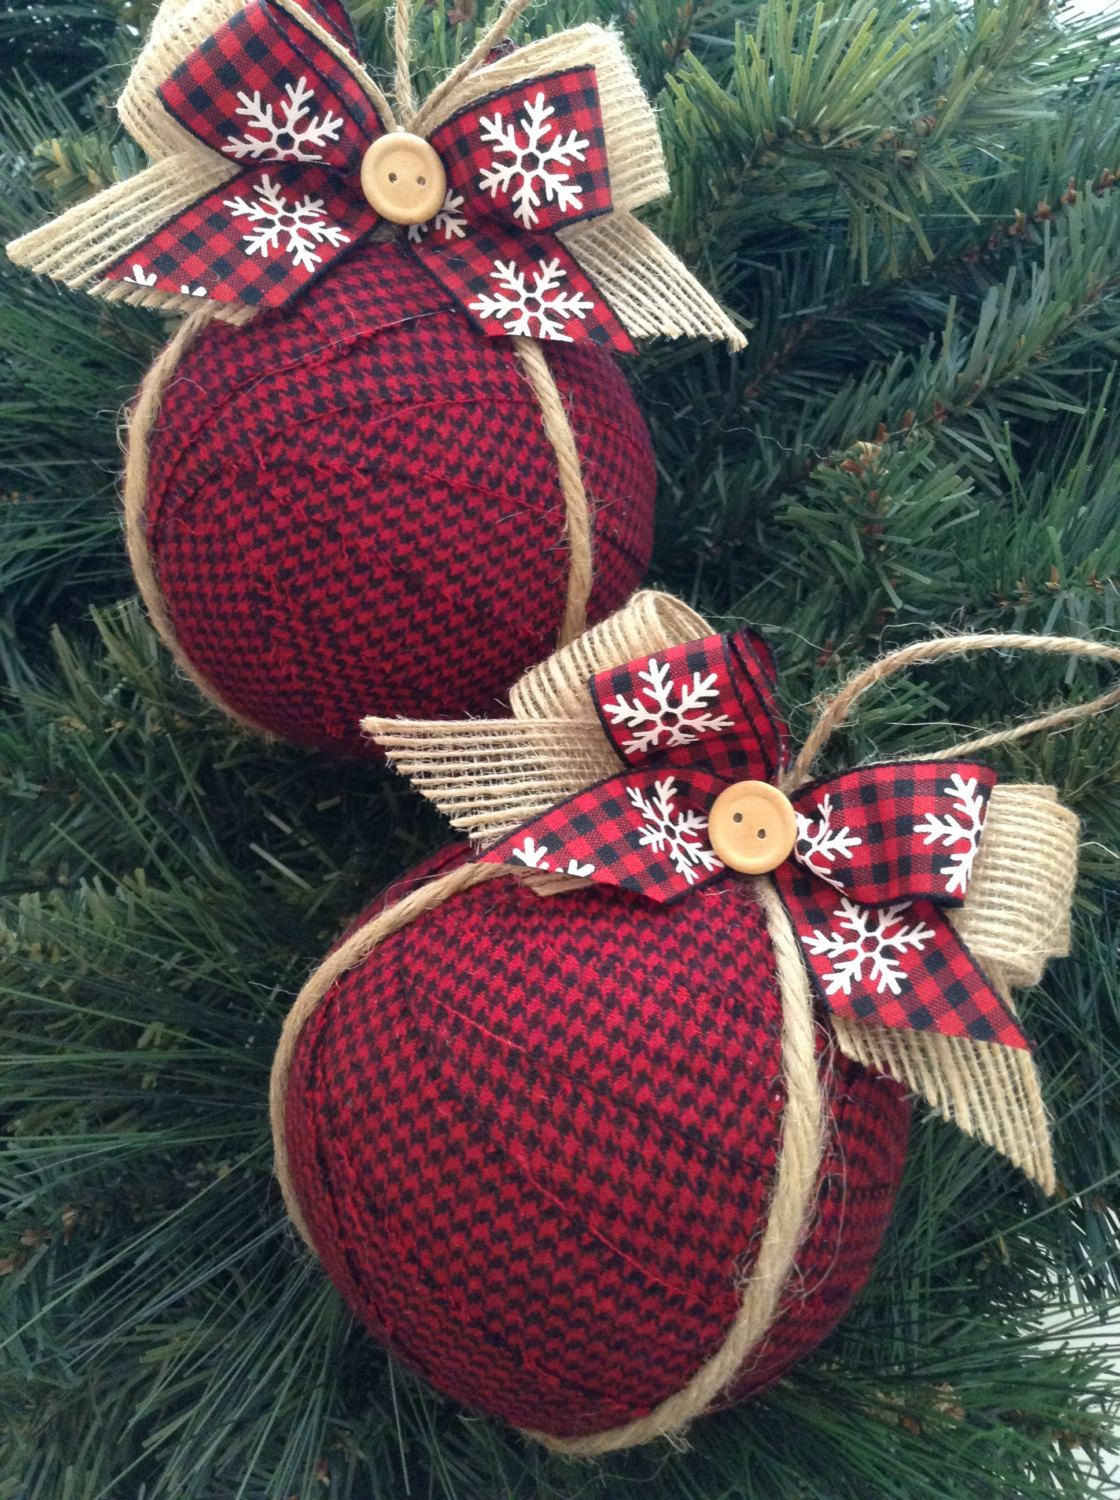 ornaments christmas fabric ornaments xmas tree ornaments red black burlap xmas ornaments set of 2 rustic xmas - Burlap Christmas Decorations